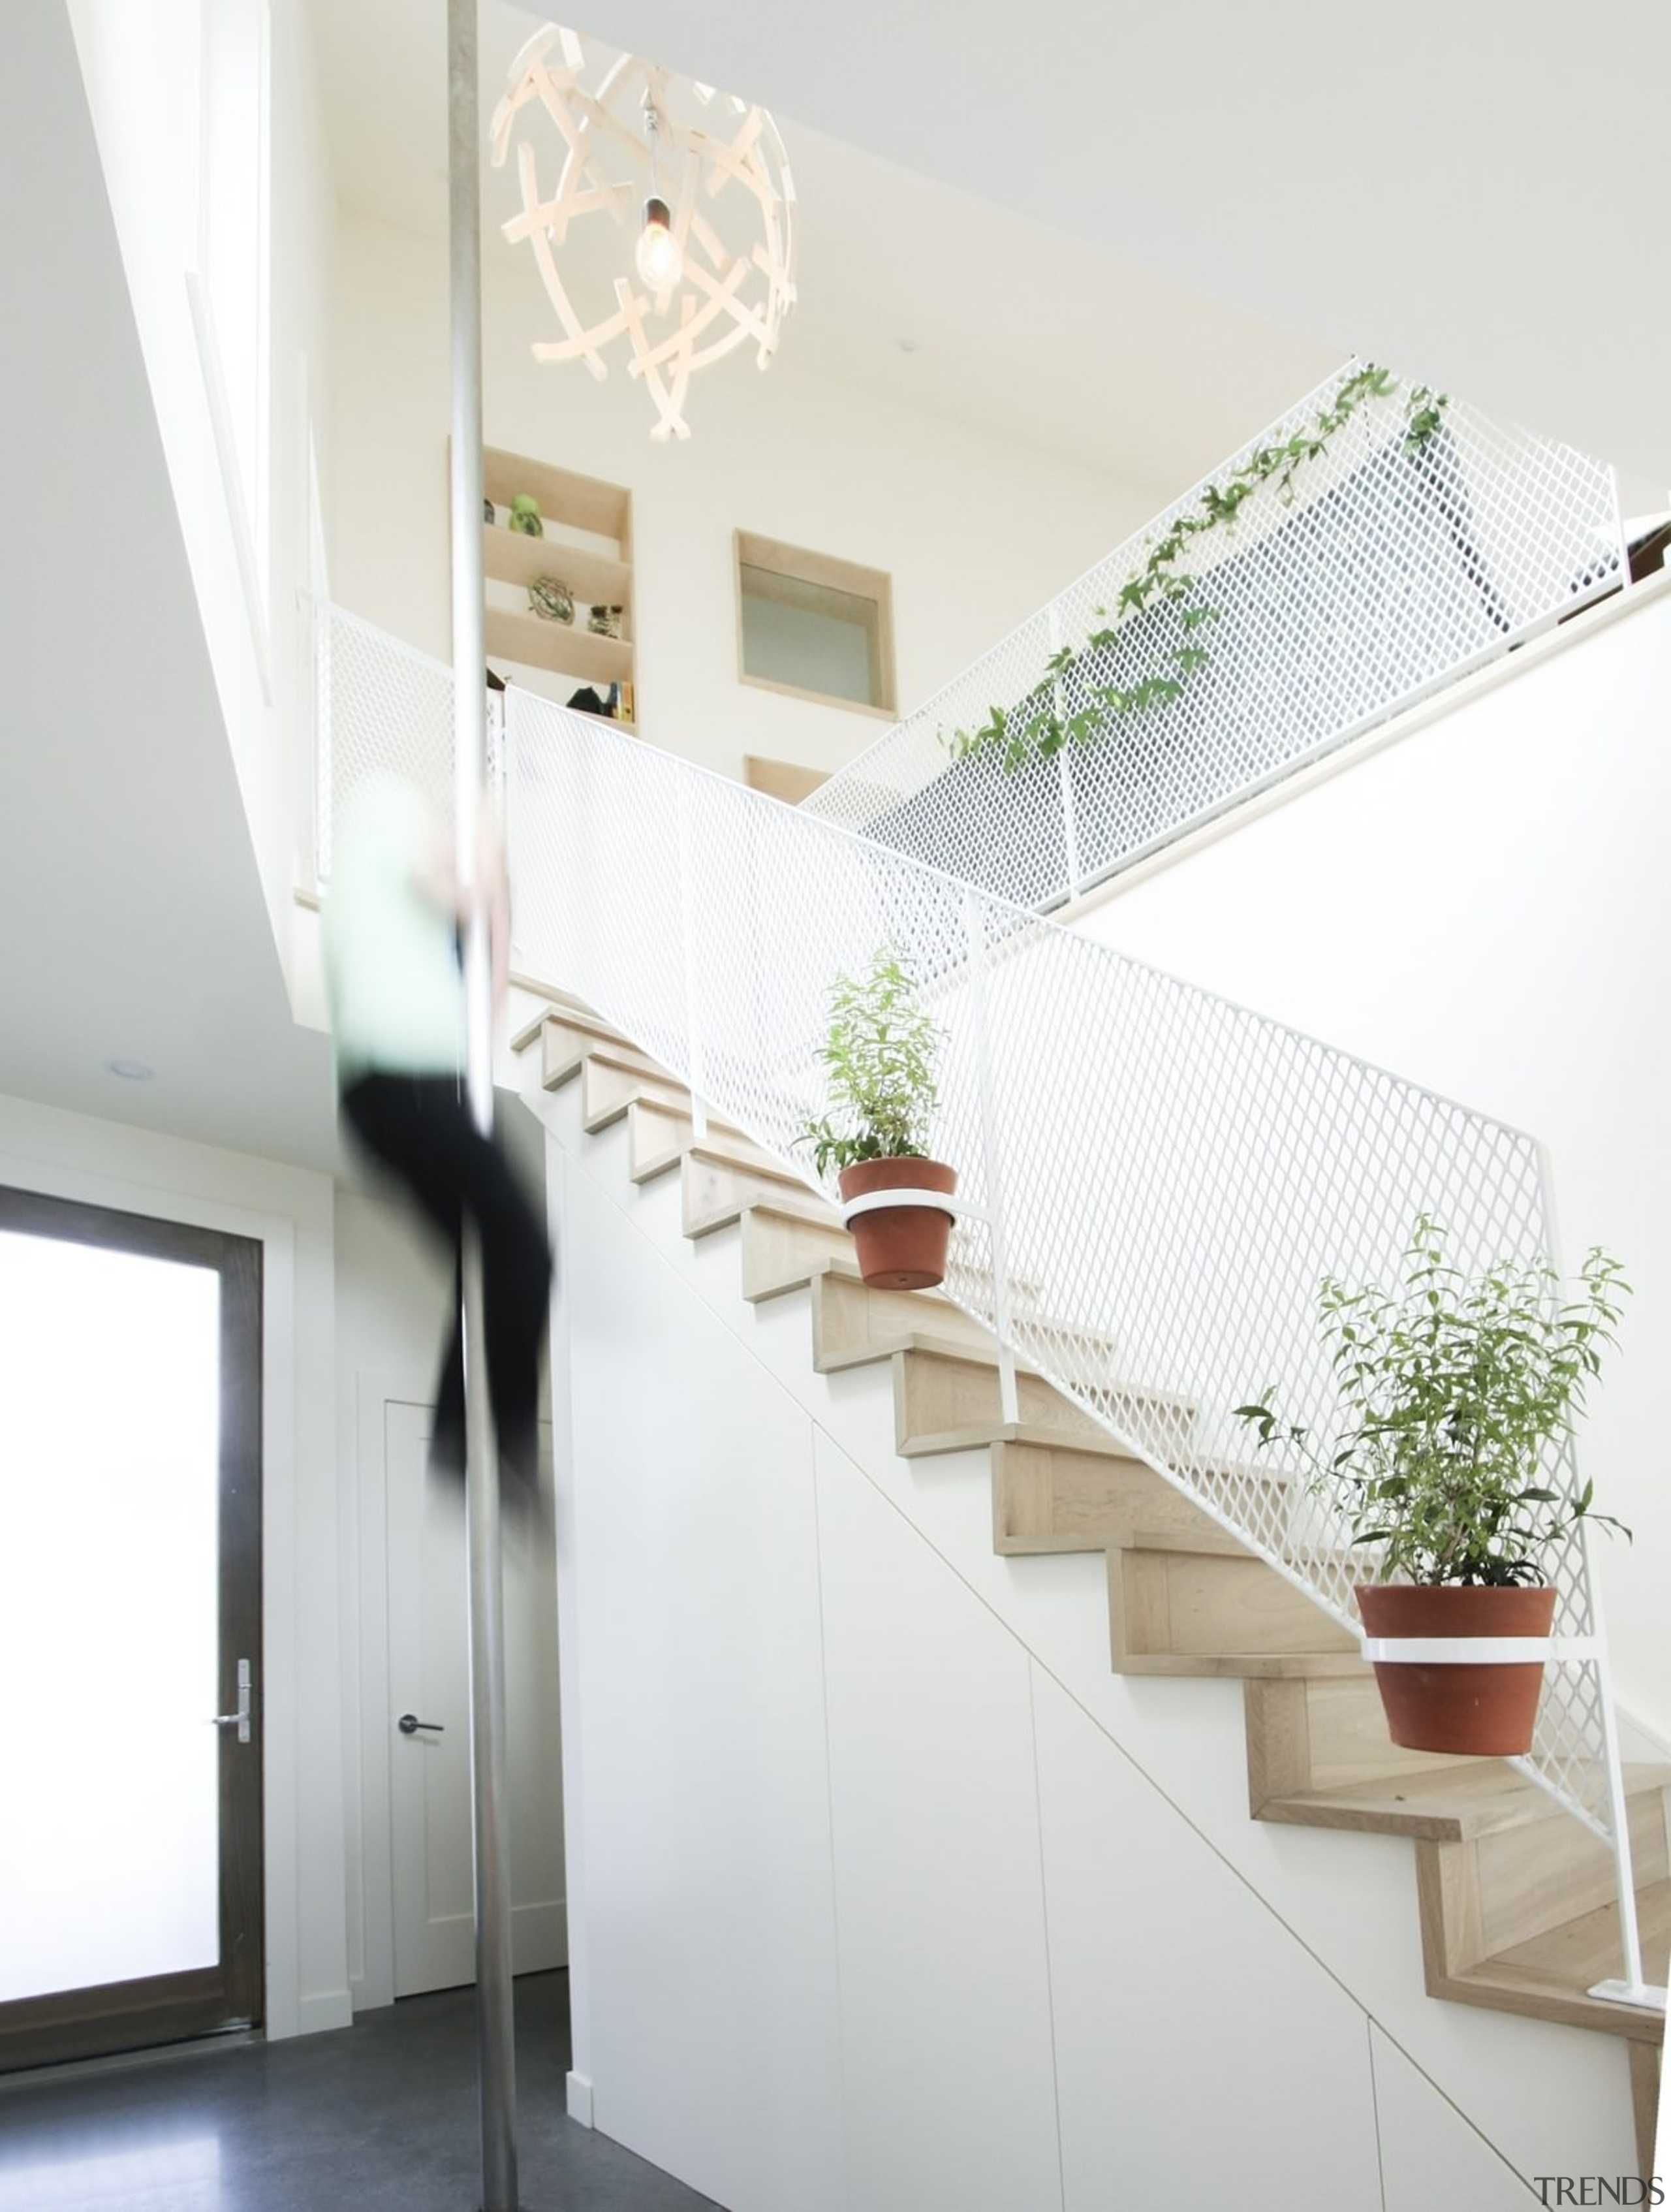 The white mesh is certainly different - The architecture, daylighting, glass, handrail, home, house, interior design, product design, stairs, window, white